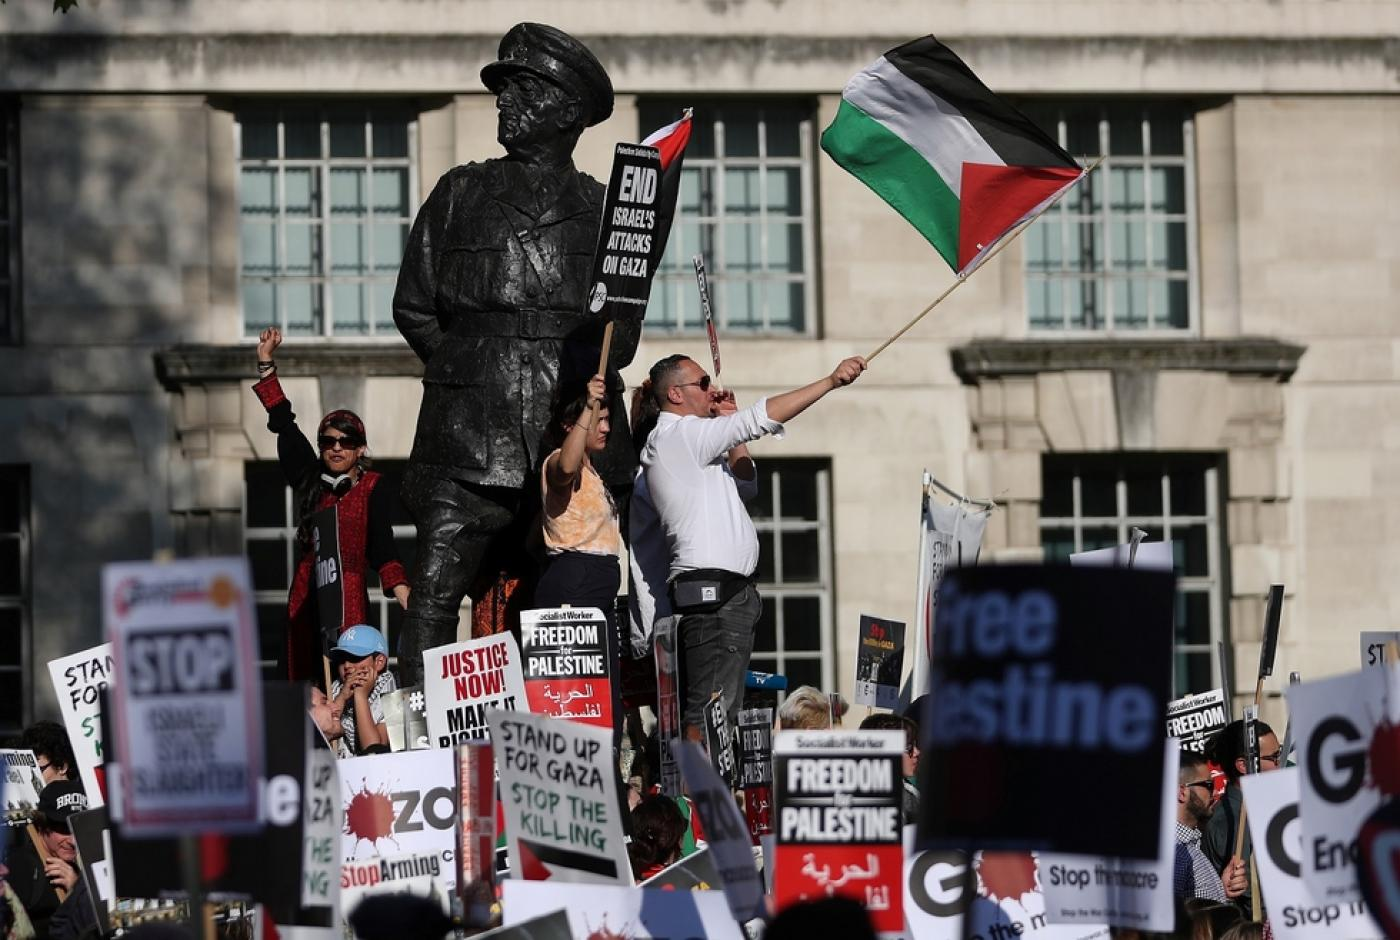 UK minority and ethnic groups slam attempts to silence